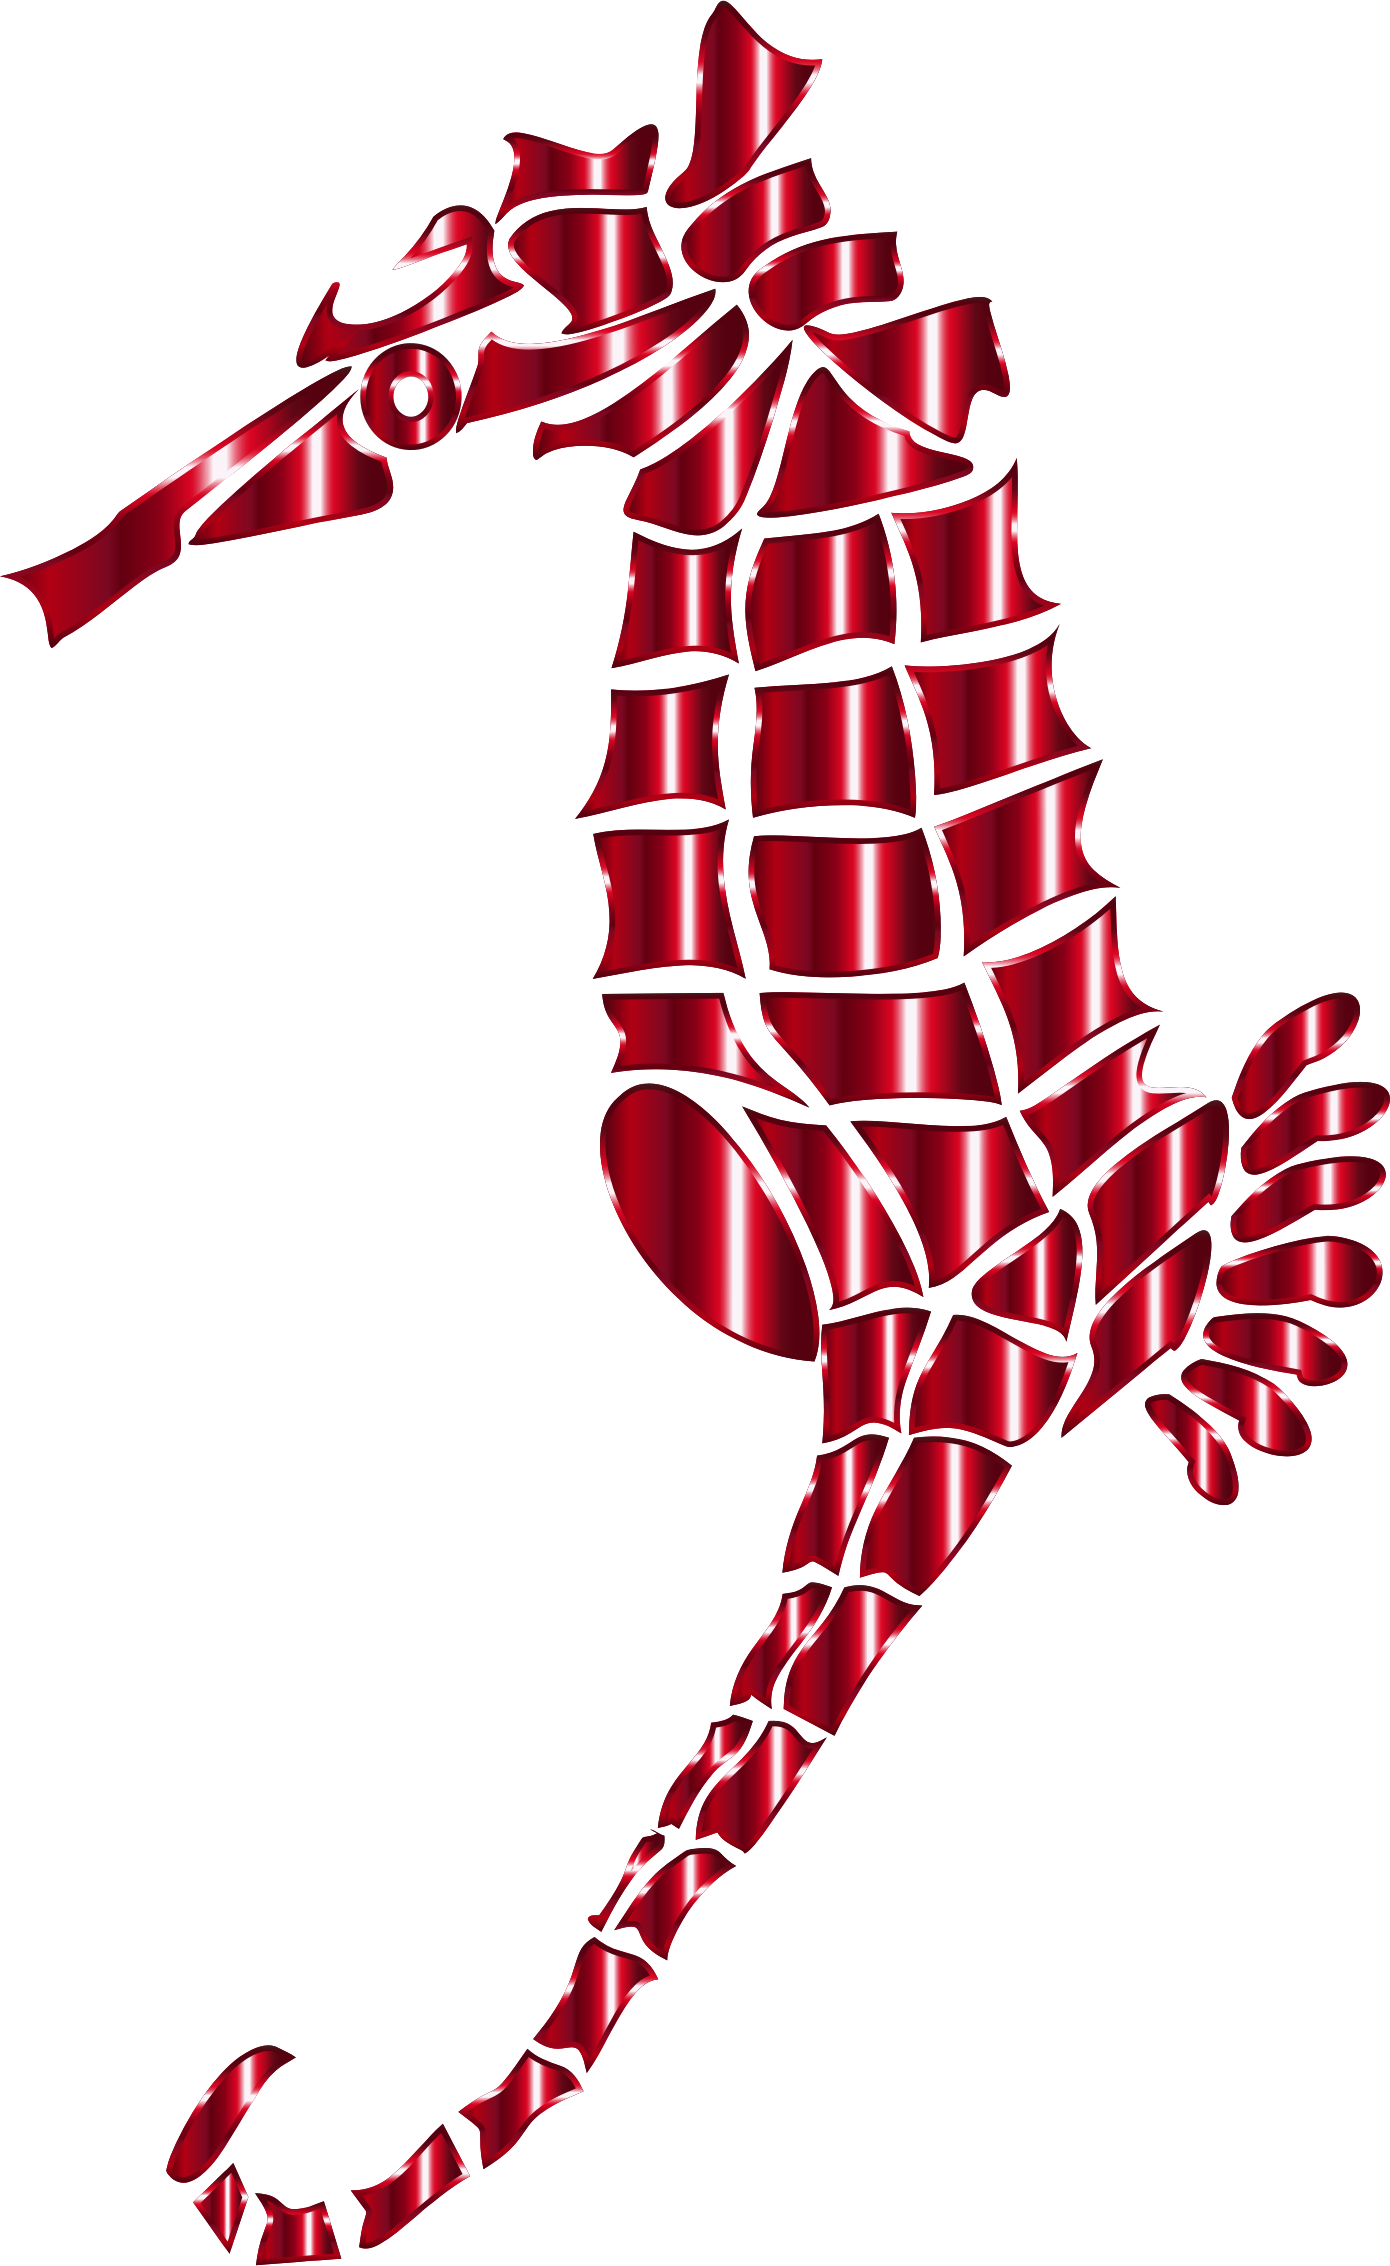 Vermillion Stylized Seahorse Silhouette No Background by GDJ